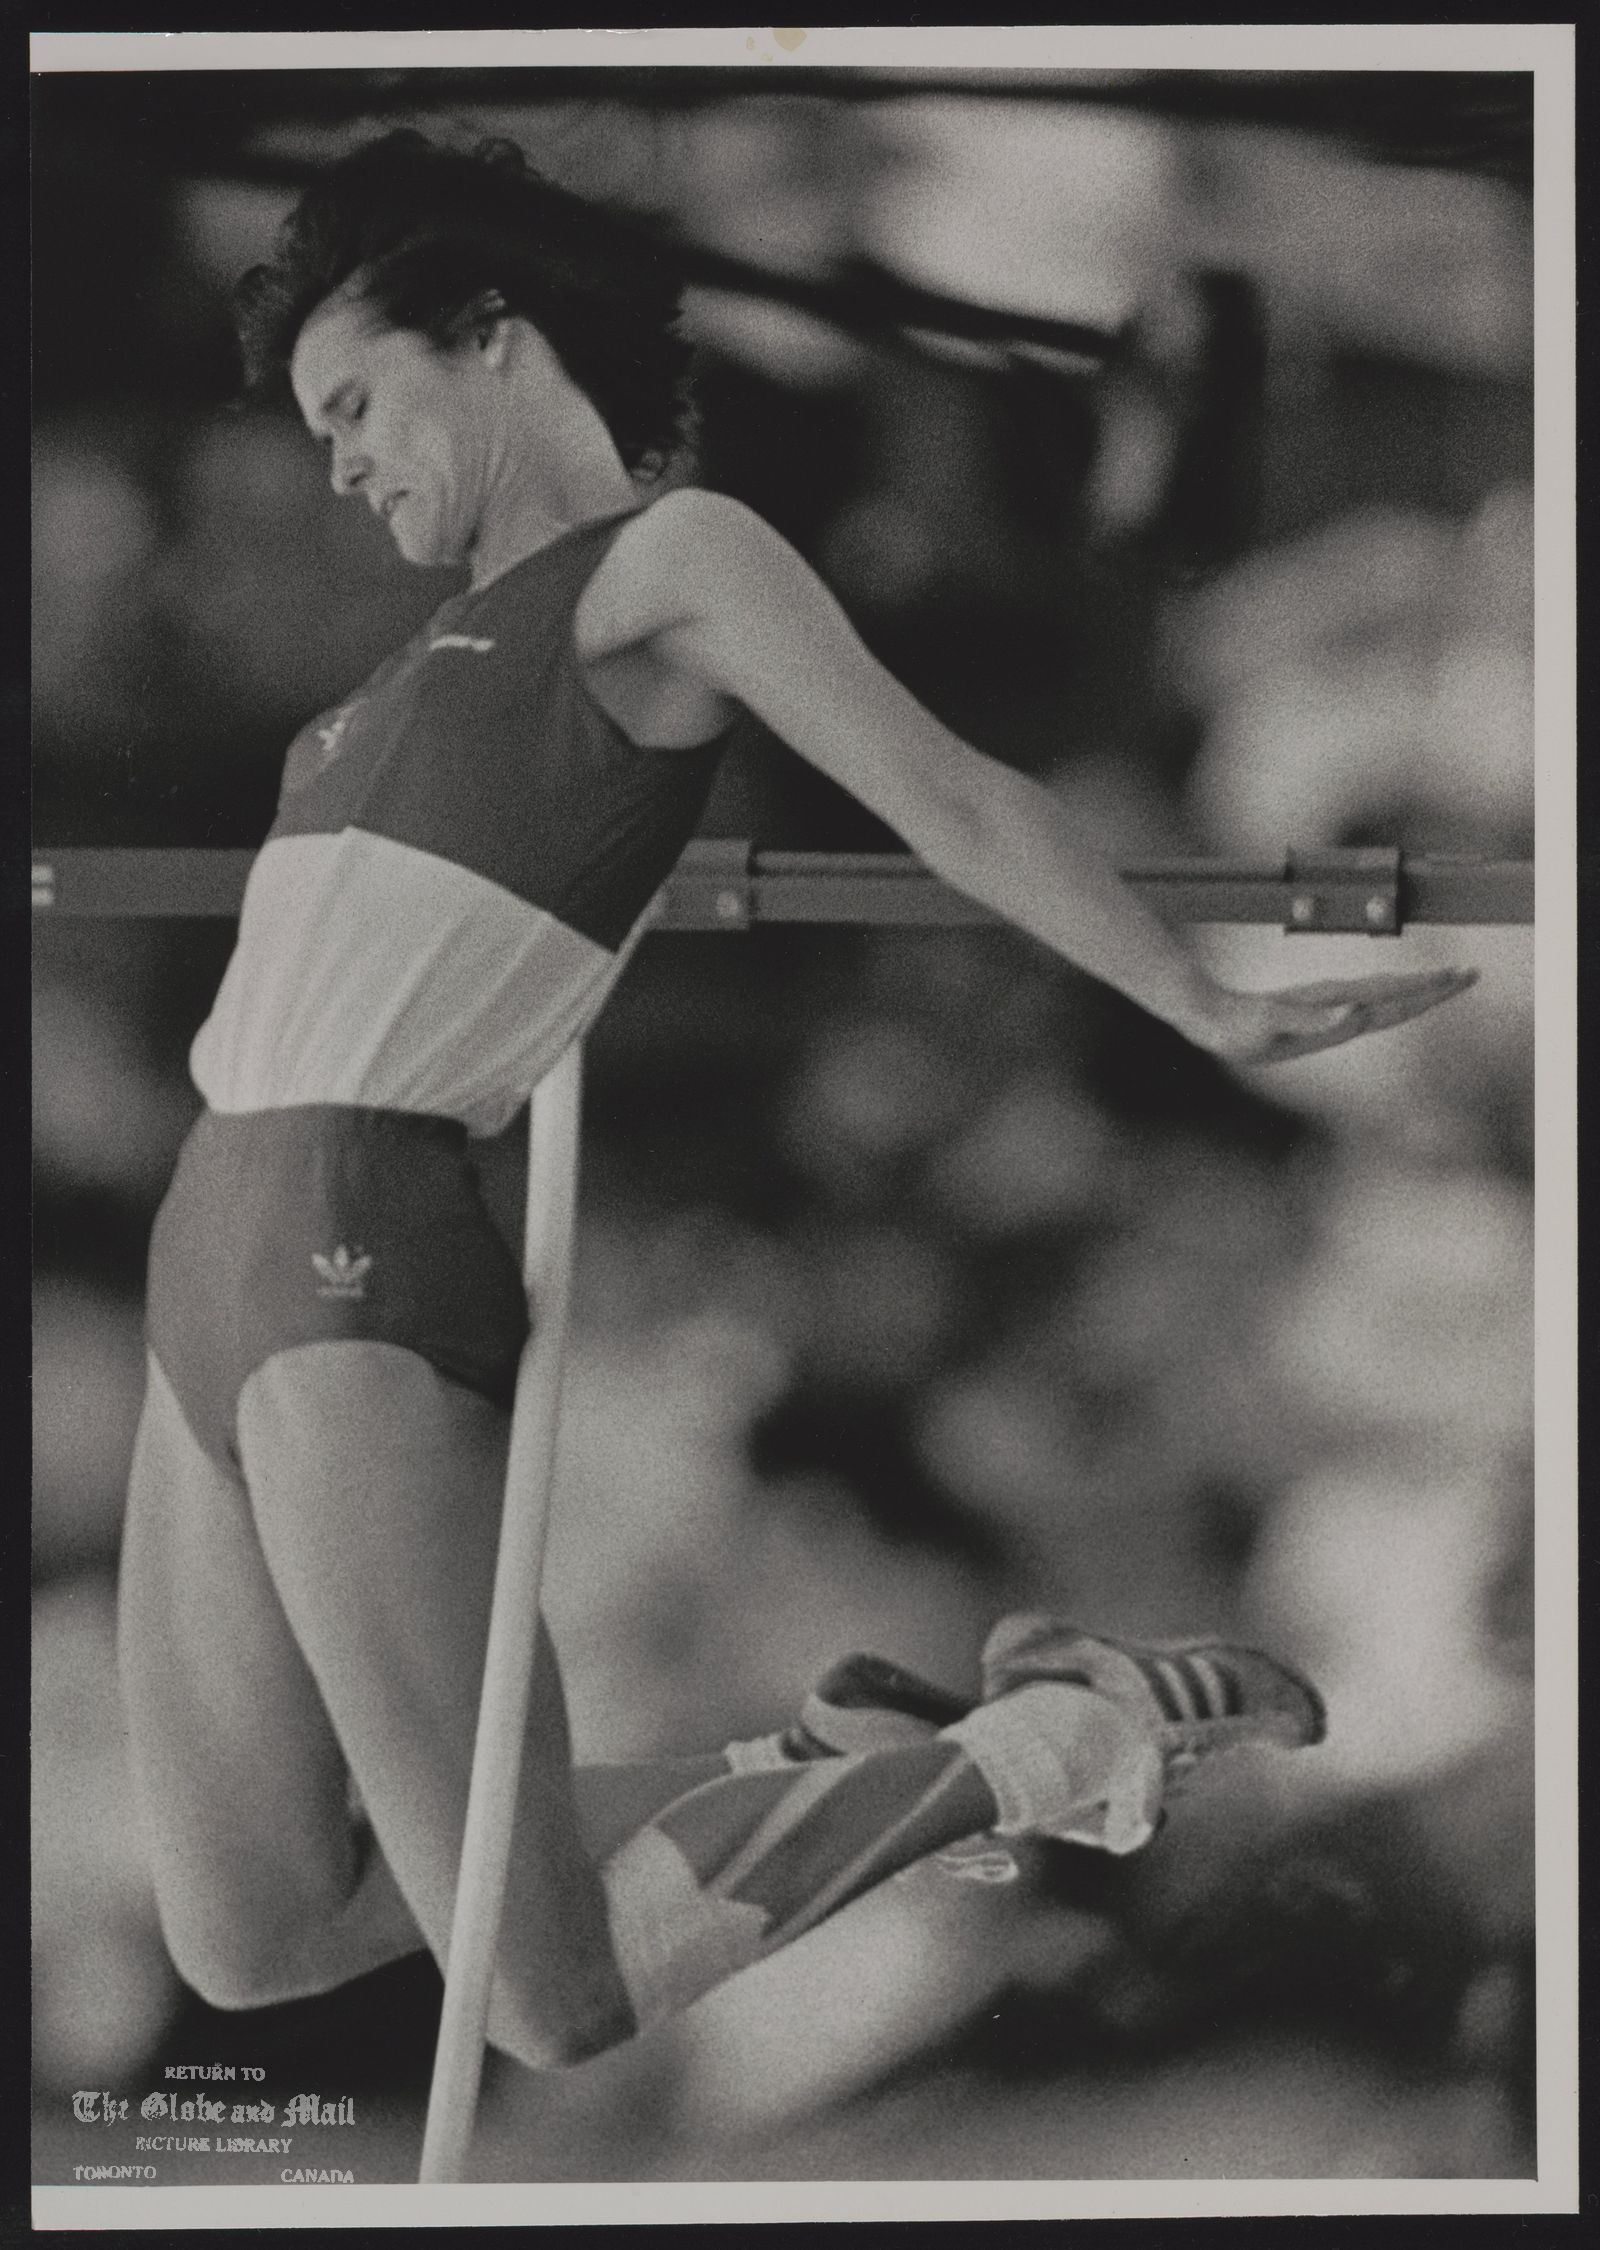 COMMONWEALTH GAMES EDINBURGH 1986 EDI17:SPECIAL FOR THE TORONTO GLOBE AND MAIL, CANADA. EDINBURGH, SCOTLAND, AUGUST 1,- Debbie Brill of Canada knocks the bar during the high jump competition at Meadowbank Stadium today. Brill was eliminated. REUTER rt/Hans Deryk 1986